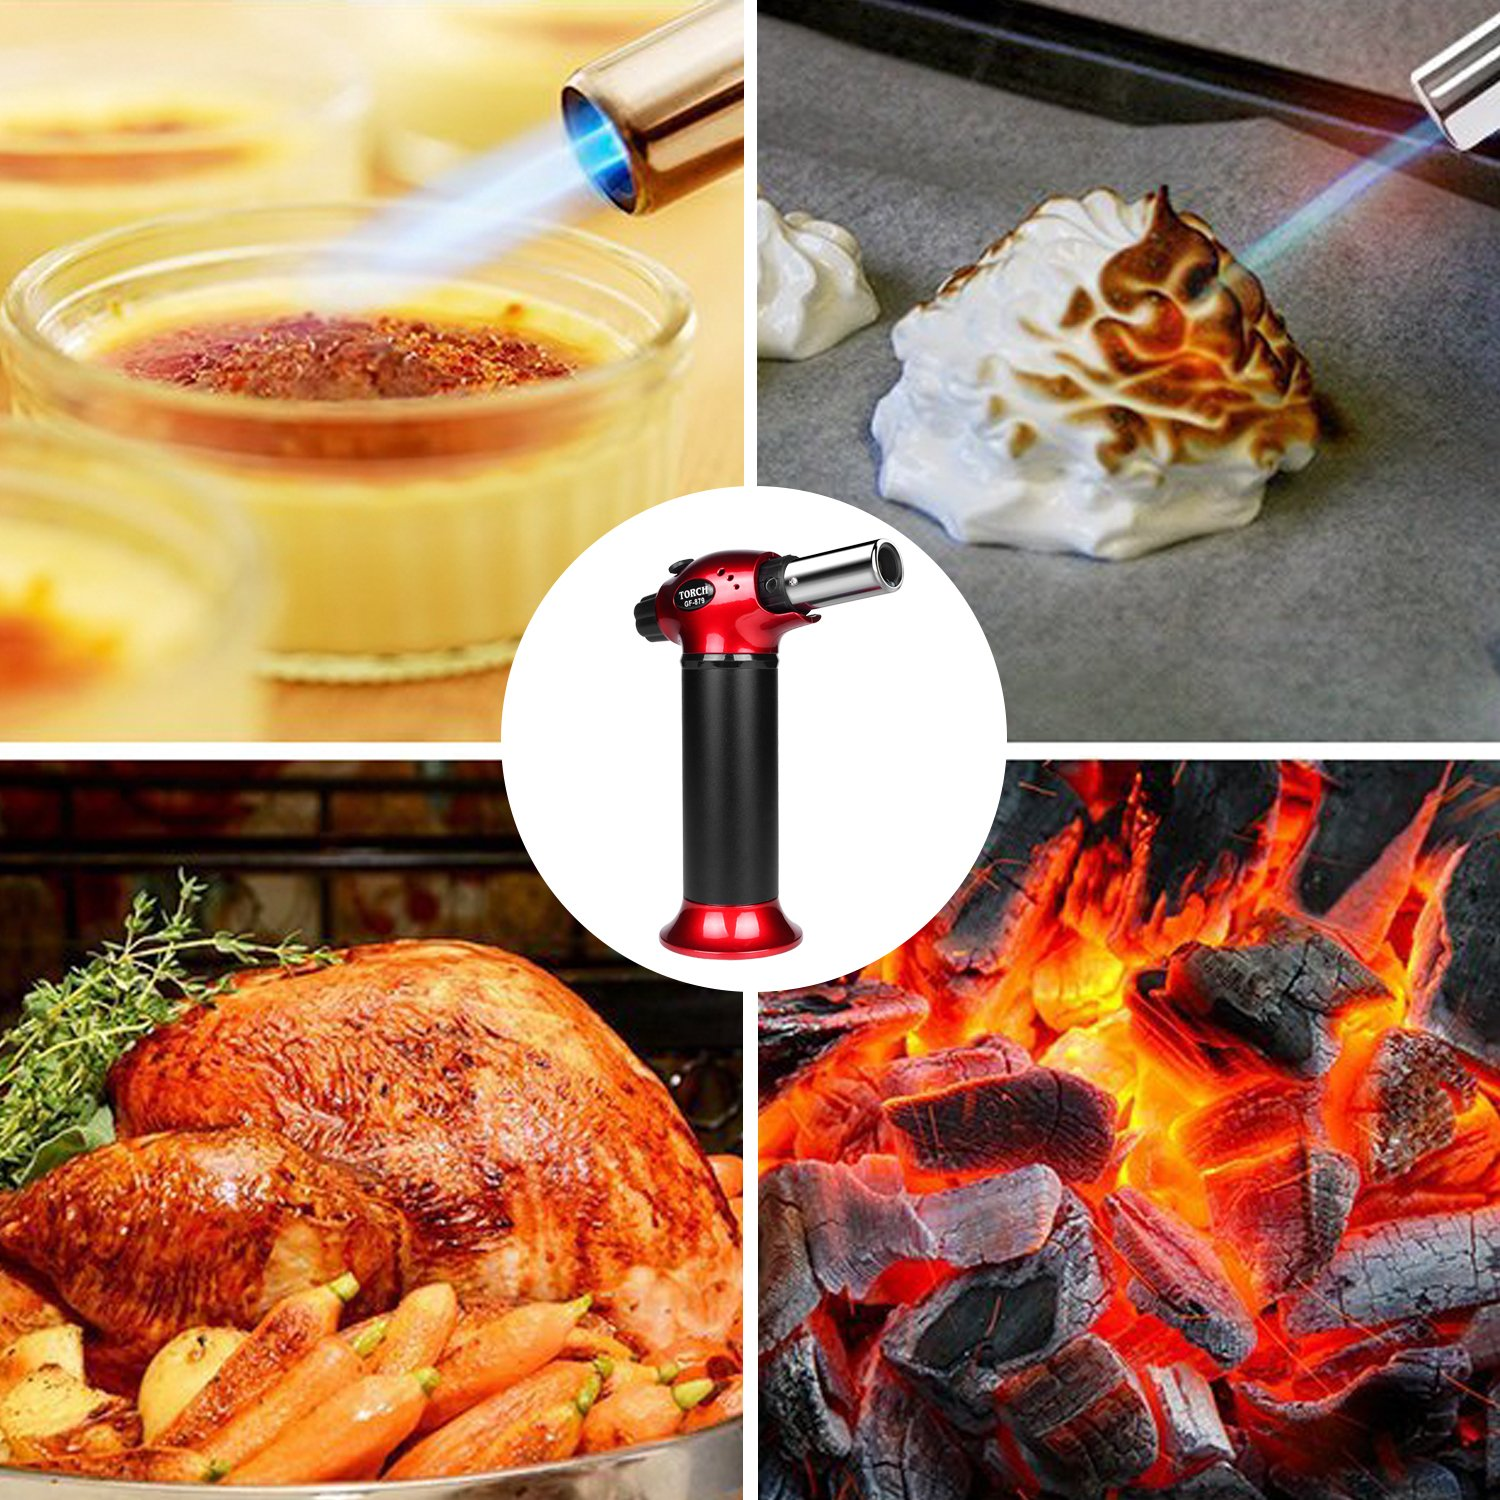 Blow Torch, Refillable Cooking Kitchen Butane Torch Lighter With Safety Lock & Adjustable Flame Perfect for Pastries, Desserts, Brazing, Soldering, Welding, Melting, Heating, Peeling & More by Semdisan (Image #9)